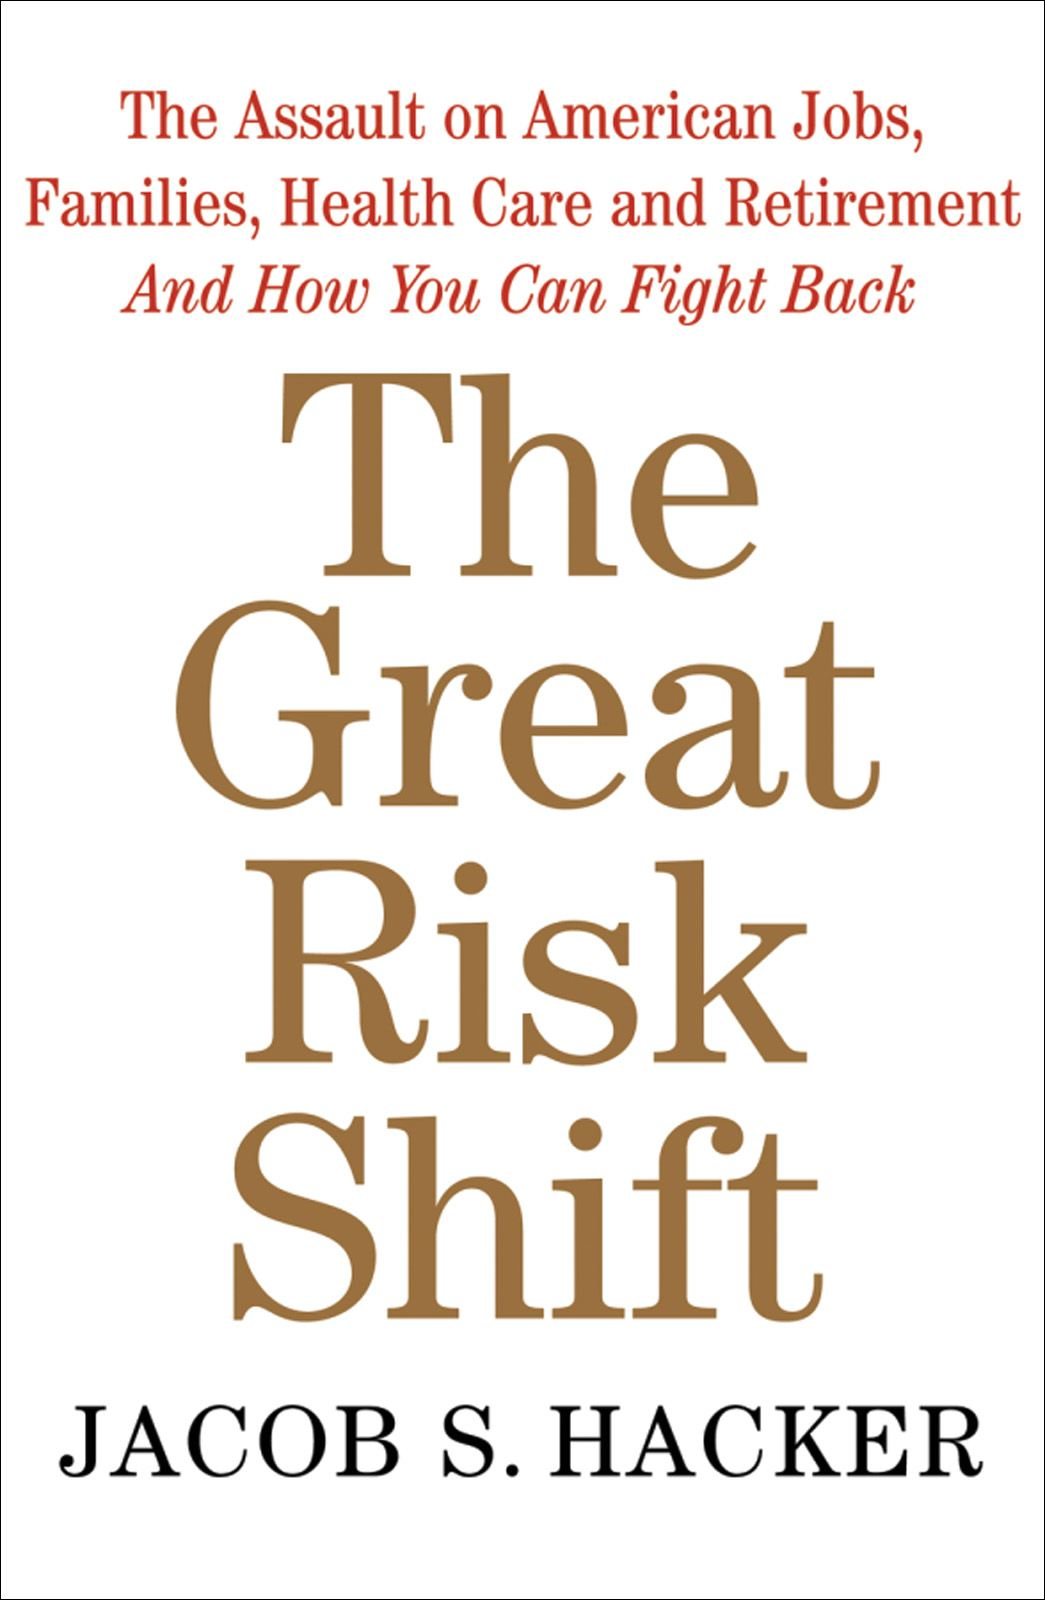 The Great Risk Shift:The Assault on American Jobs, Families, Health Care and Retirement And How You Can Fight Back